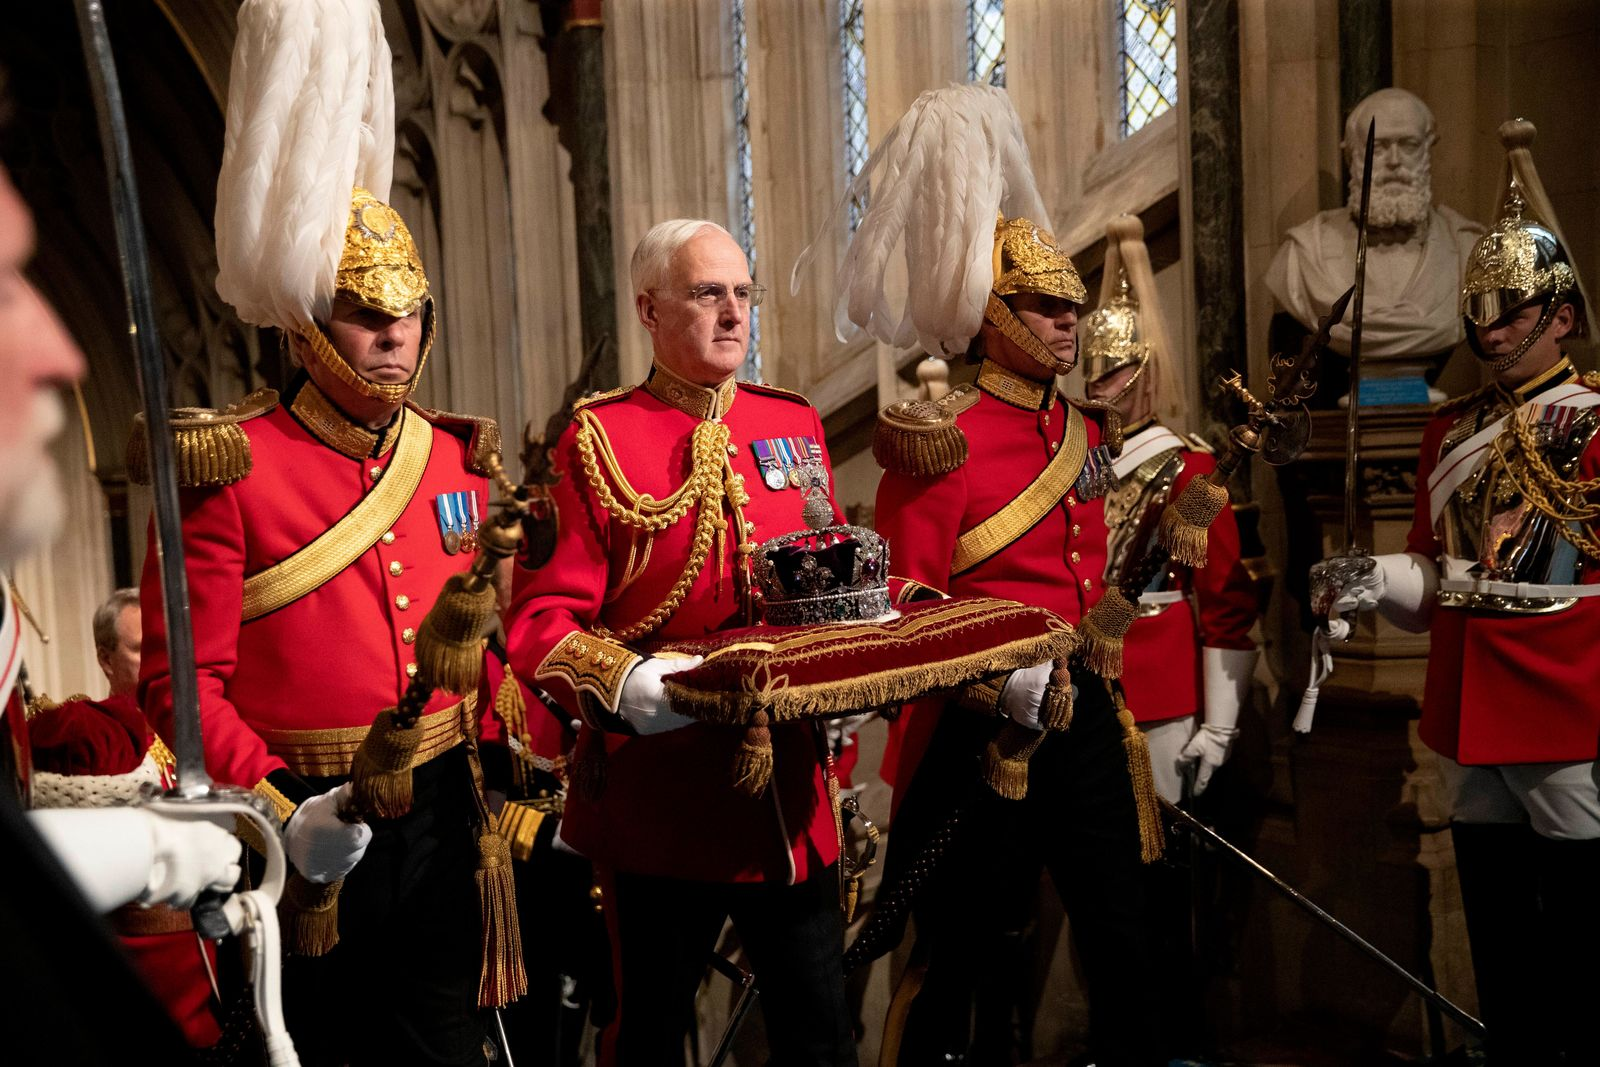 The Imperial State Crown is carried through the Norman Porch at the Palace of Westminster and the Houses of Parliament at the State Opening of Parliament ceremony in London, Monday, Oct. 14, 2019. (AP Photo/Matt Dunham, Pool)